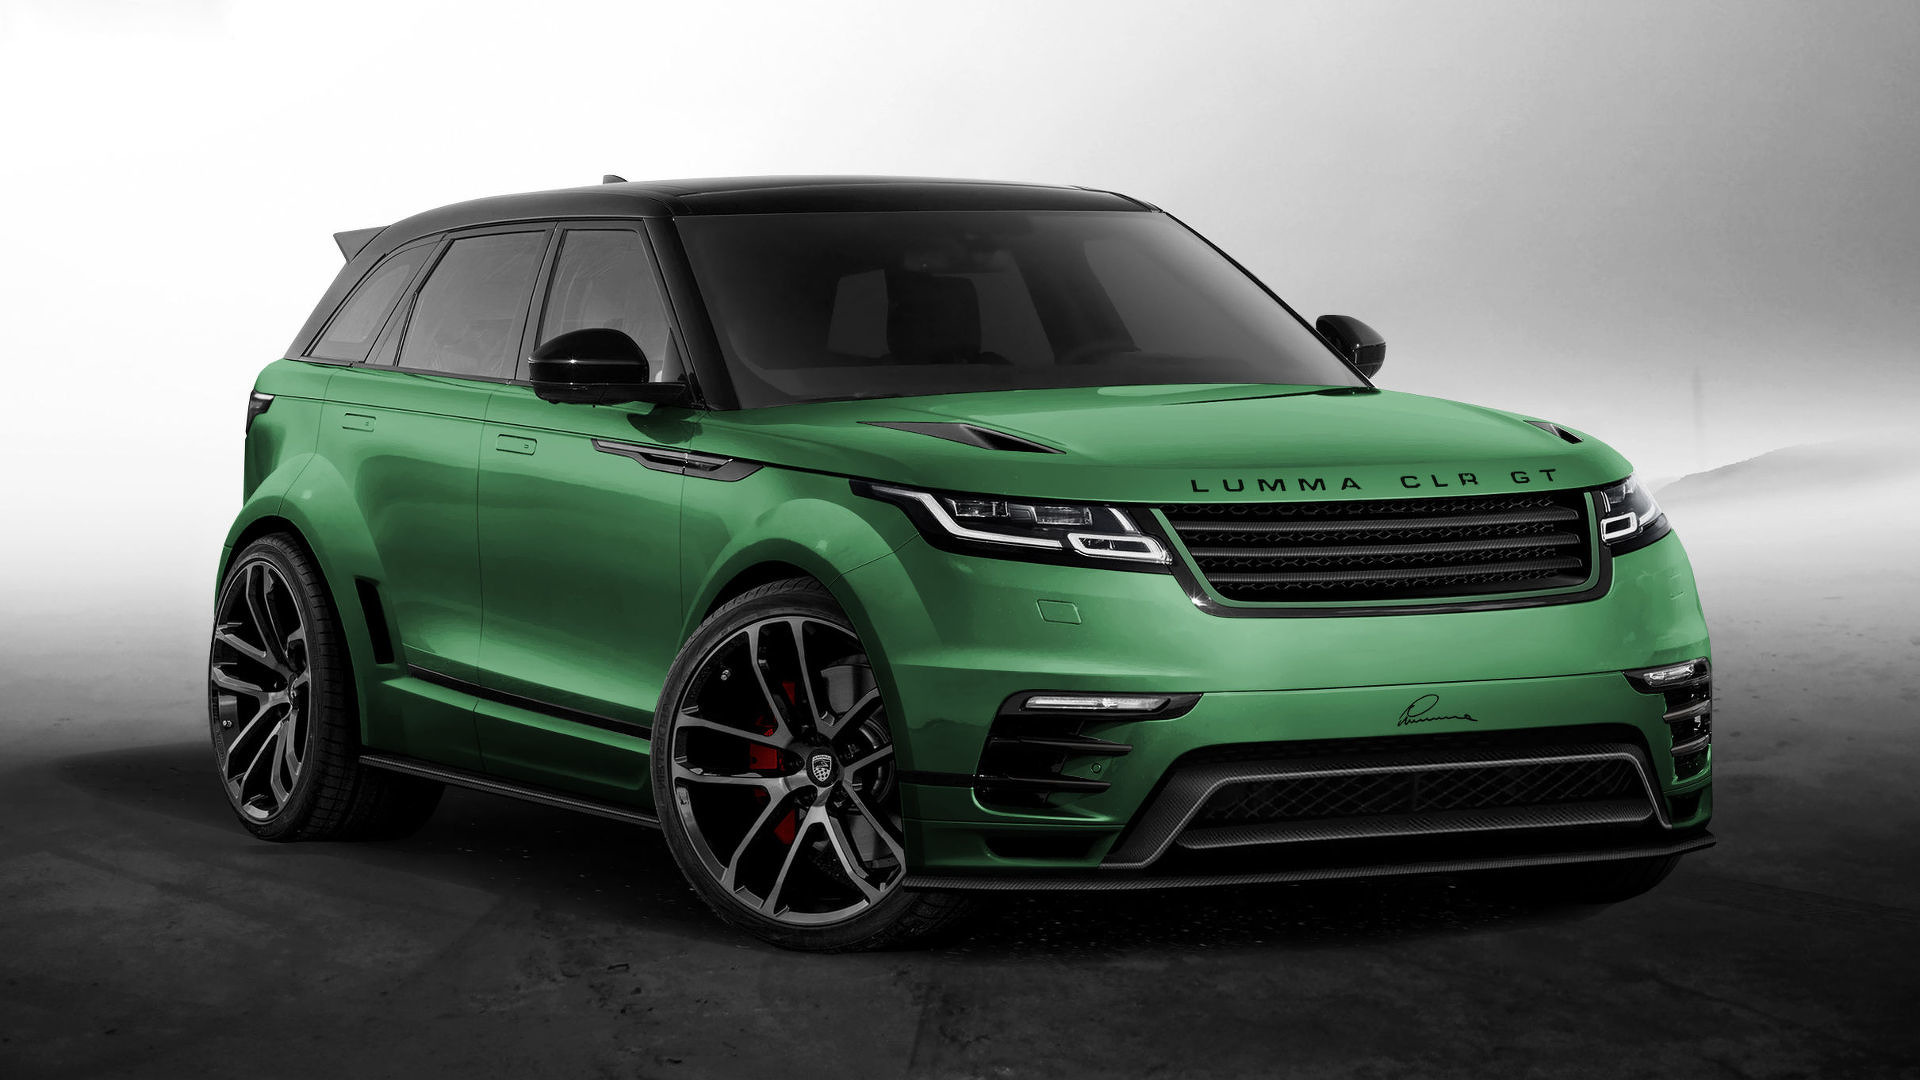 Land Rover Range Rover Velar News and Reviews